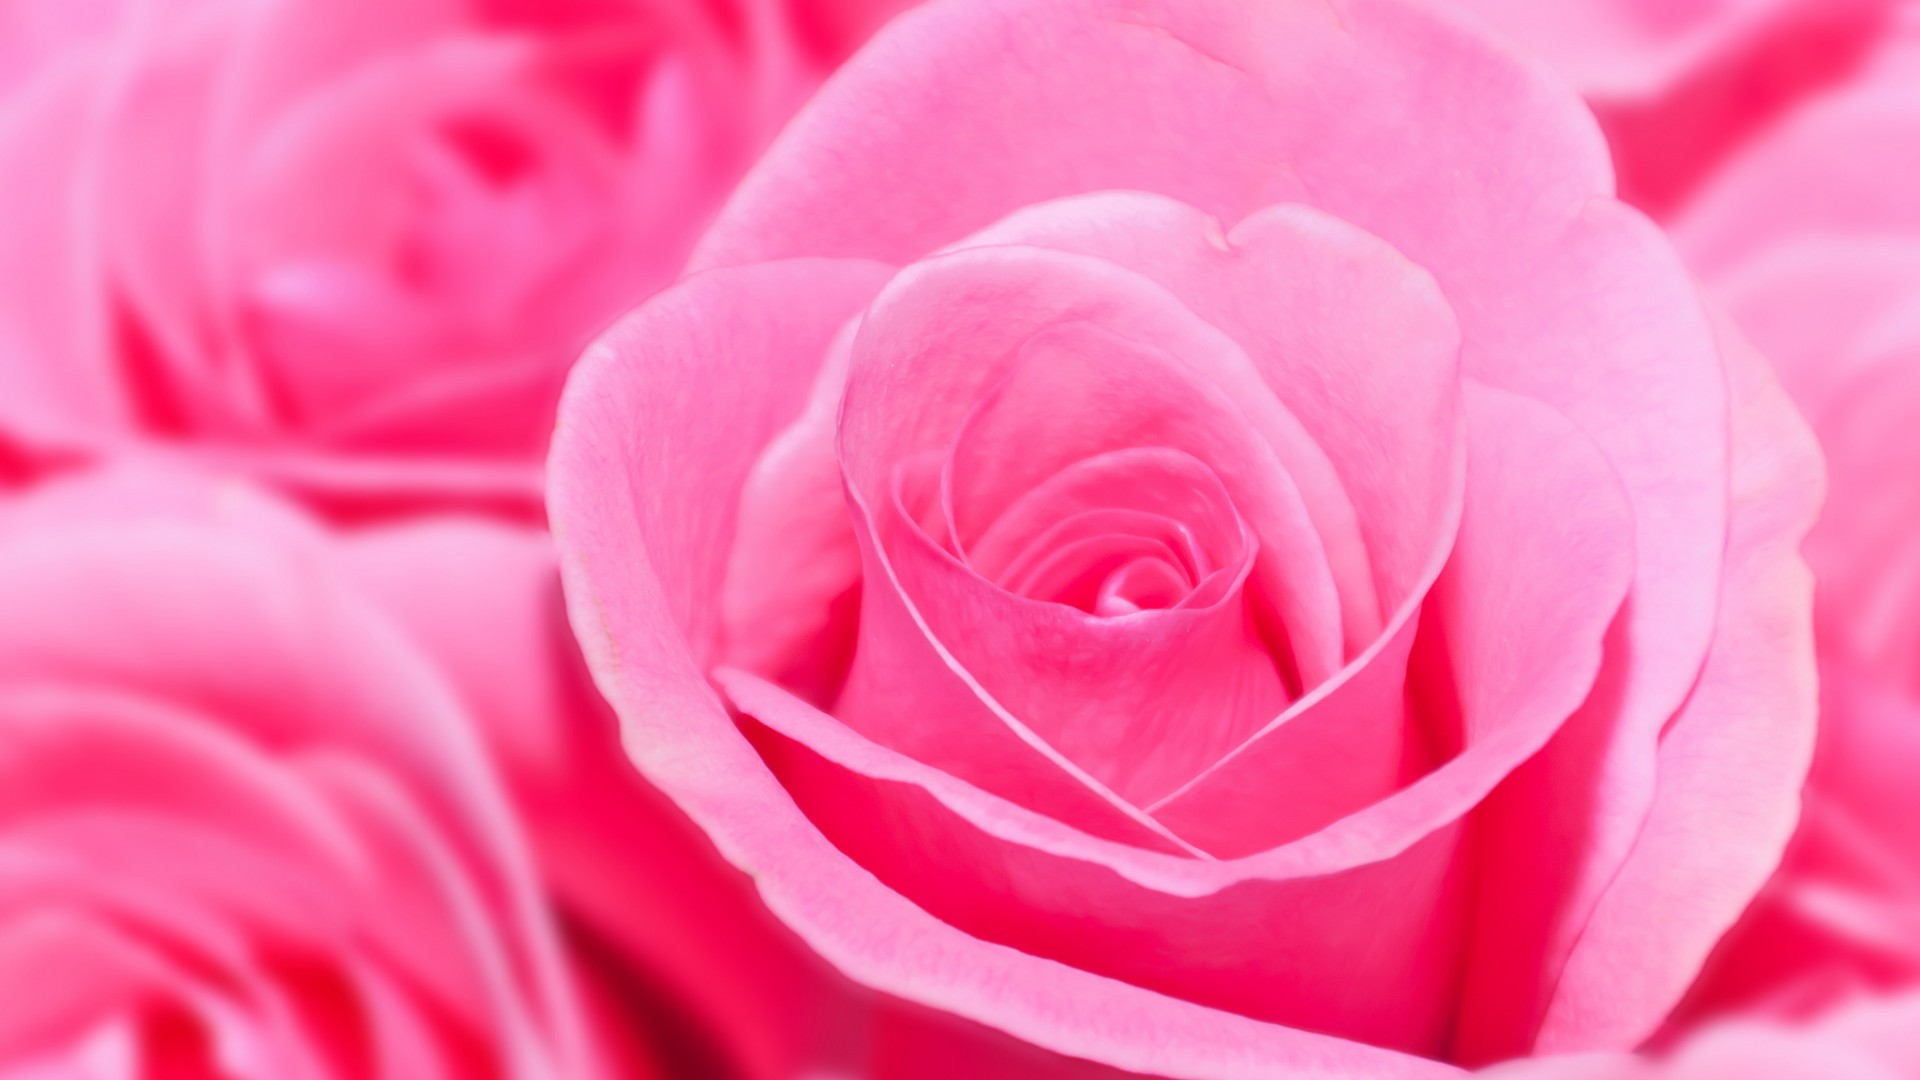 Rose Wallpapers For Desktop Full Size Hd 1080P 11 HD Wallpapers ...